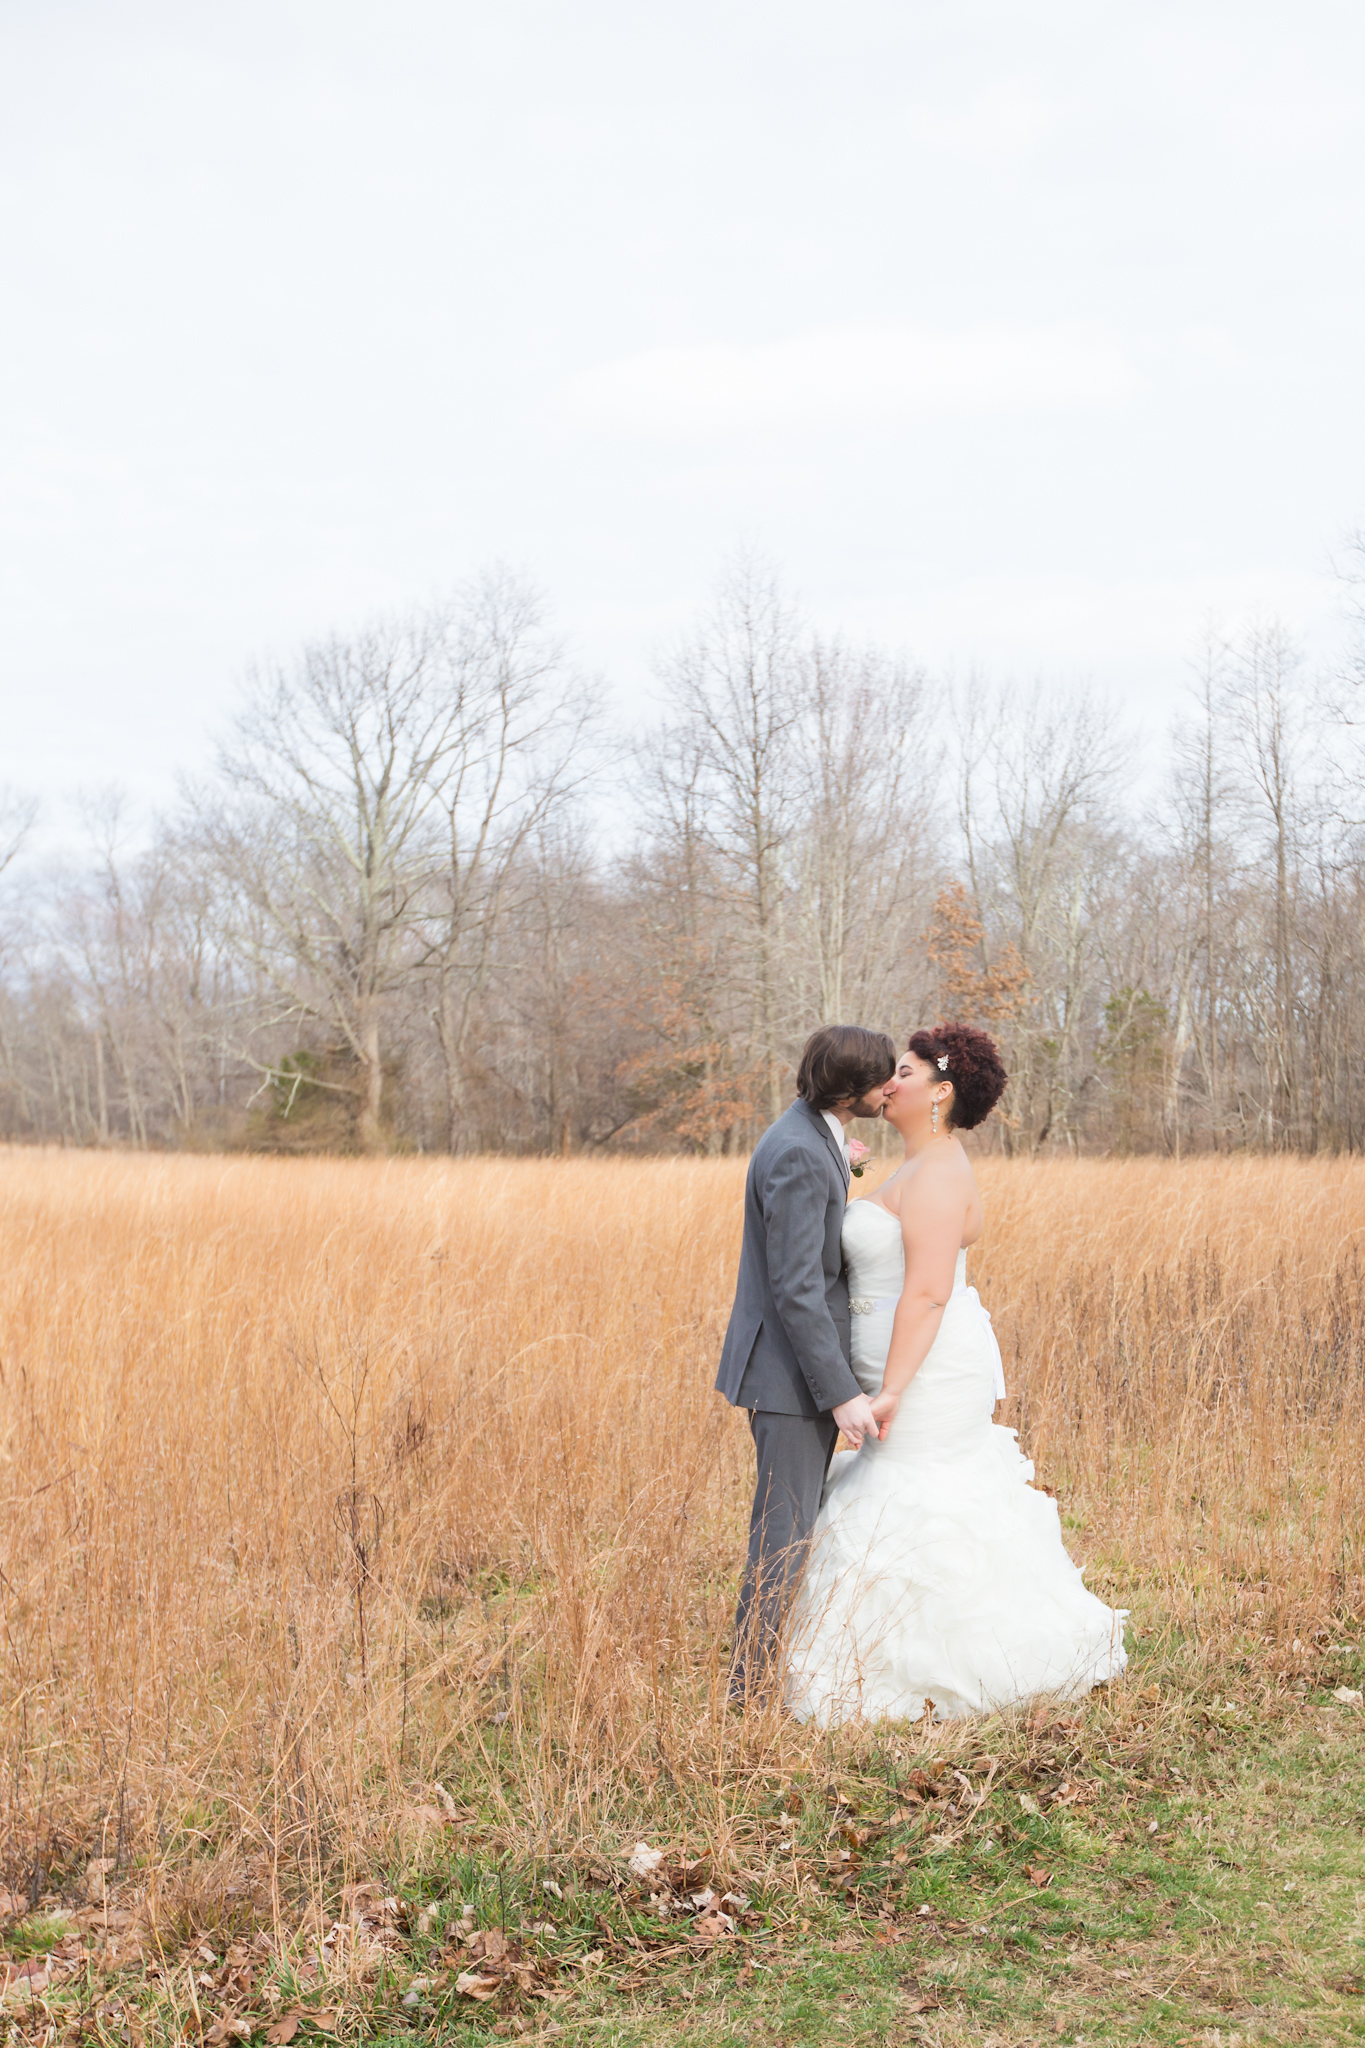 Shaina Lee Photography | Connecticut Wedding Photographer